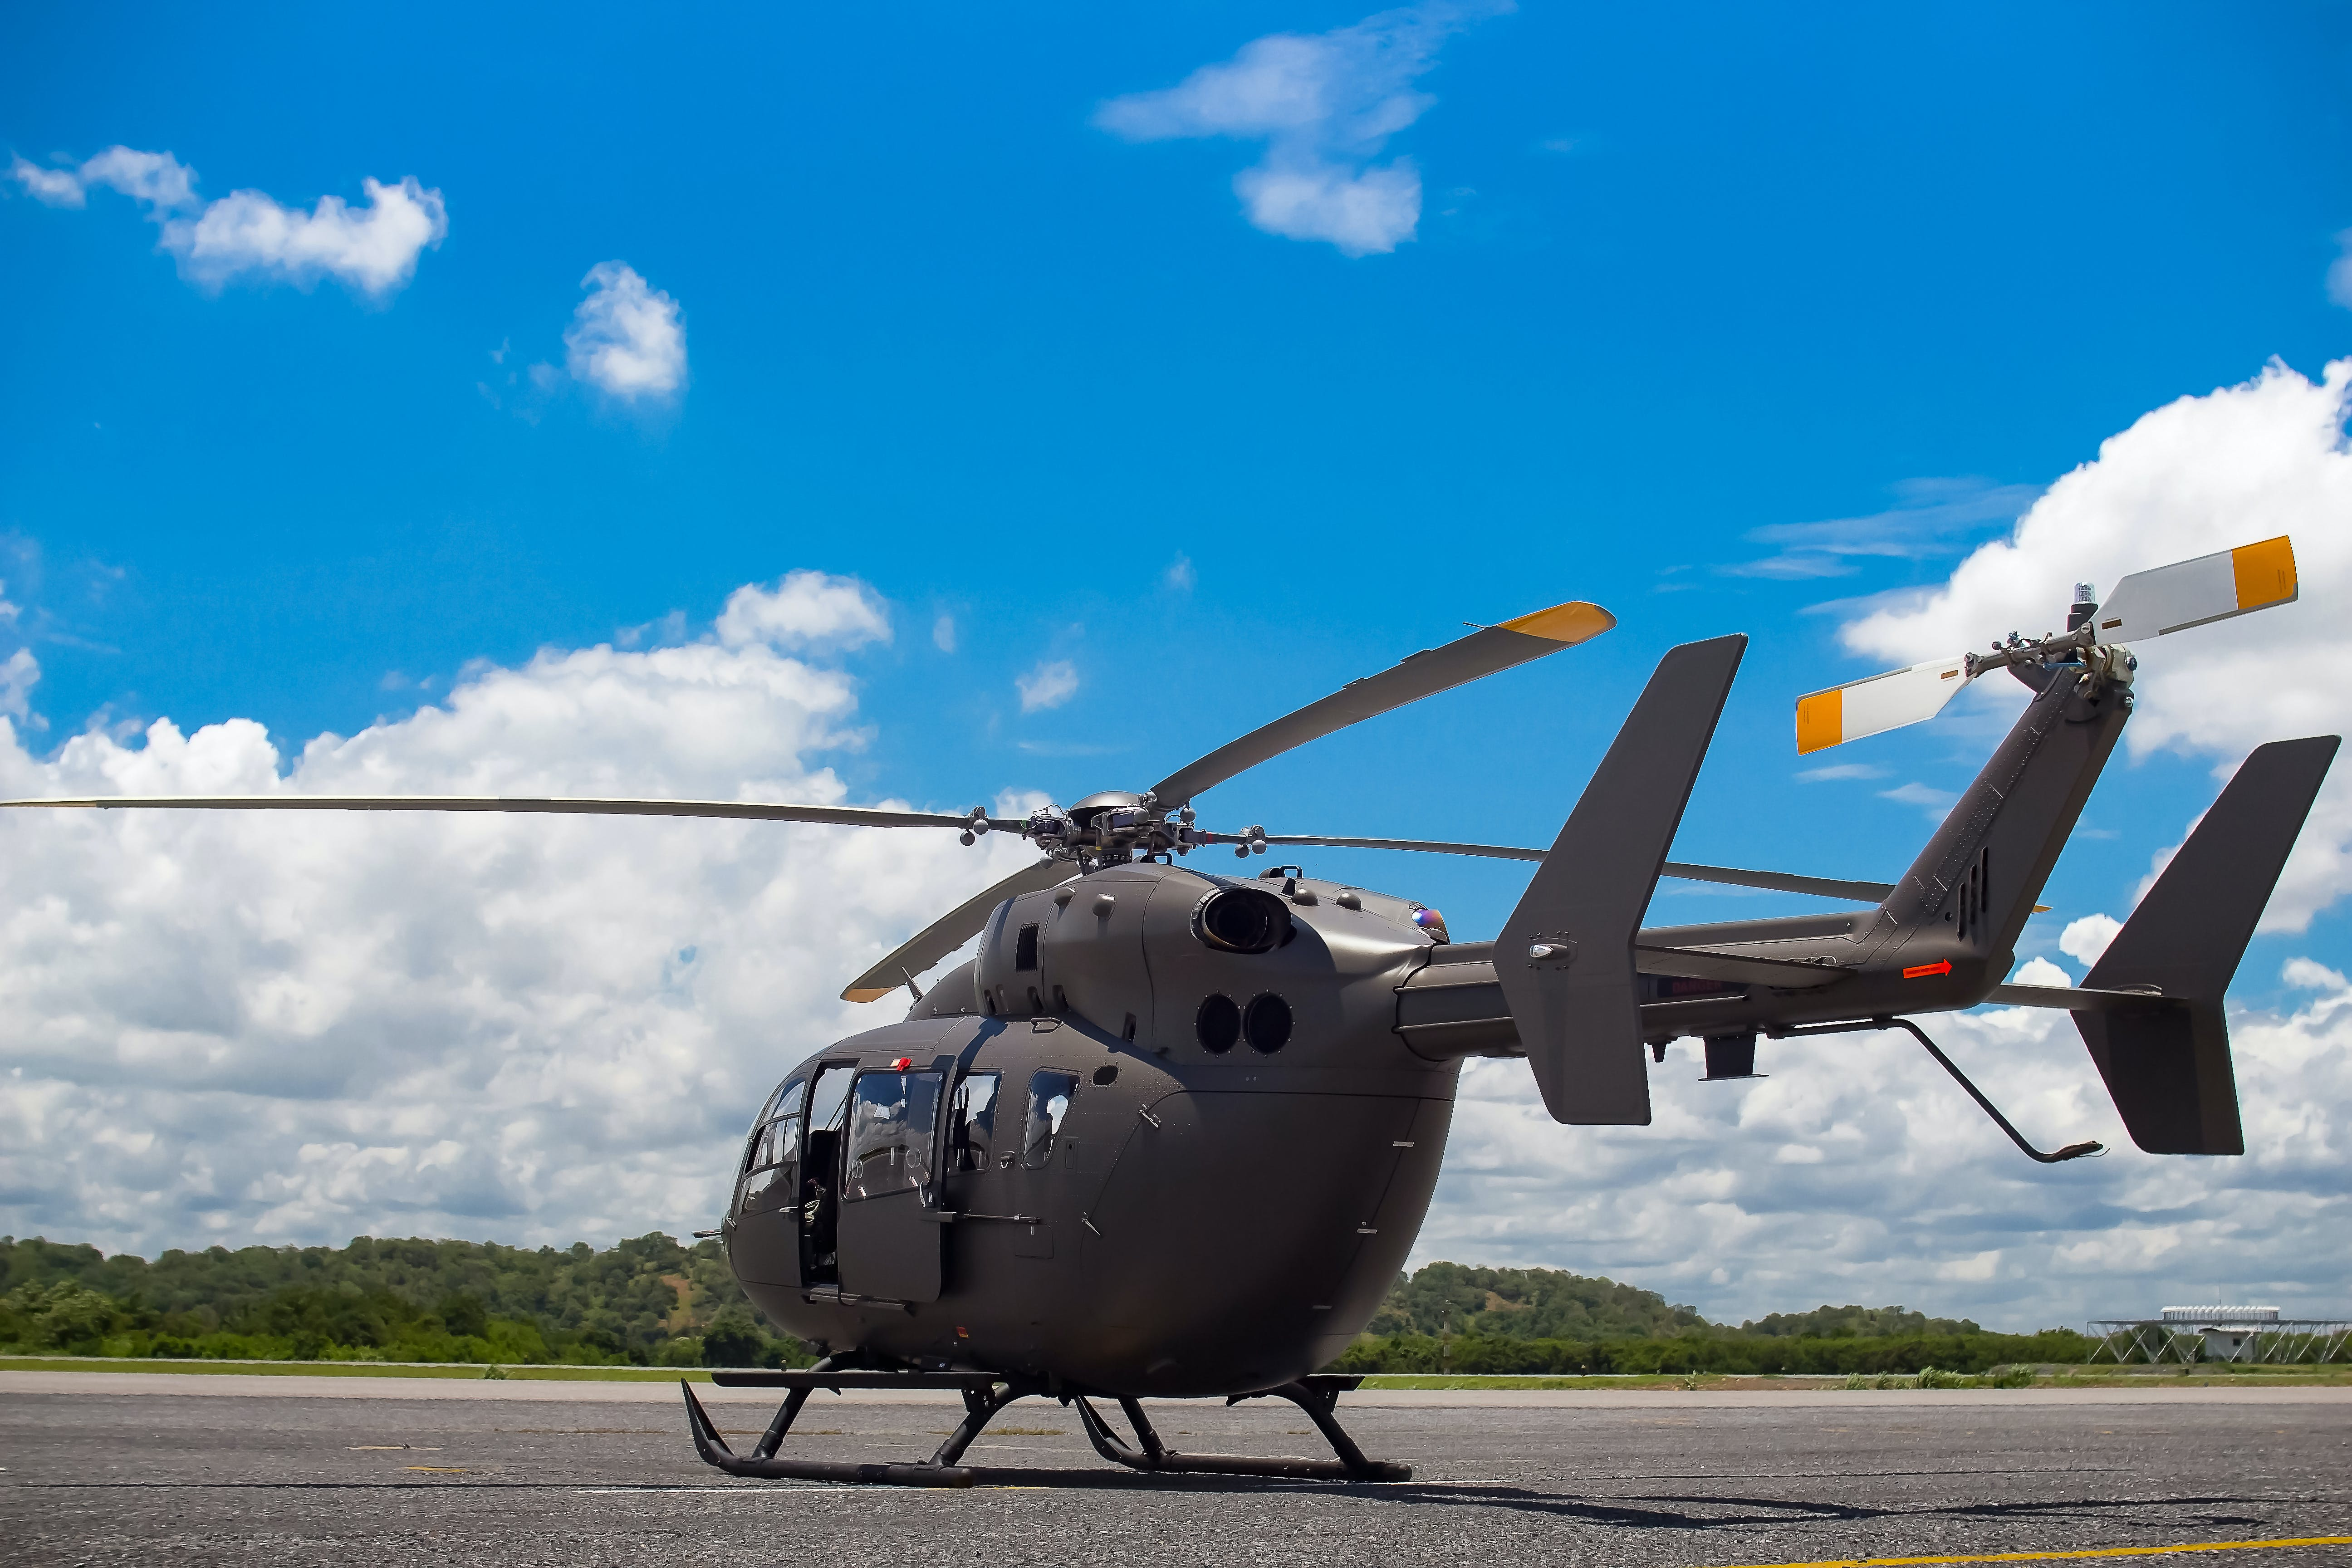 Gray Helicopter on Gray Concrete Pavement Under Blue Sky